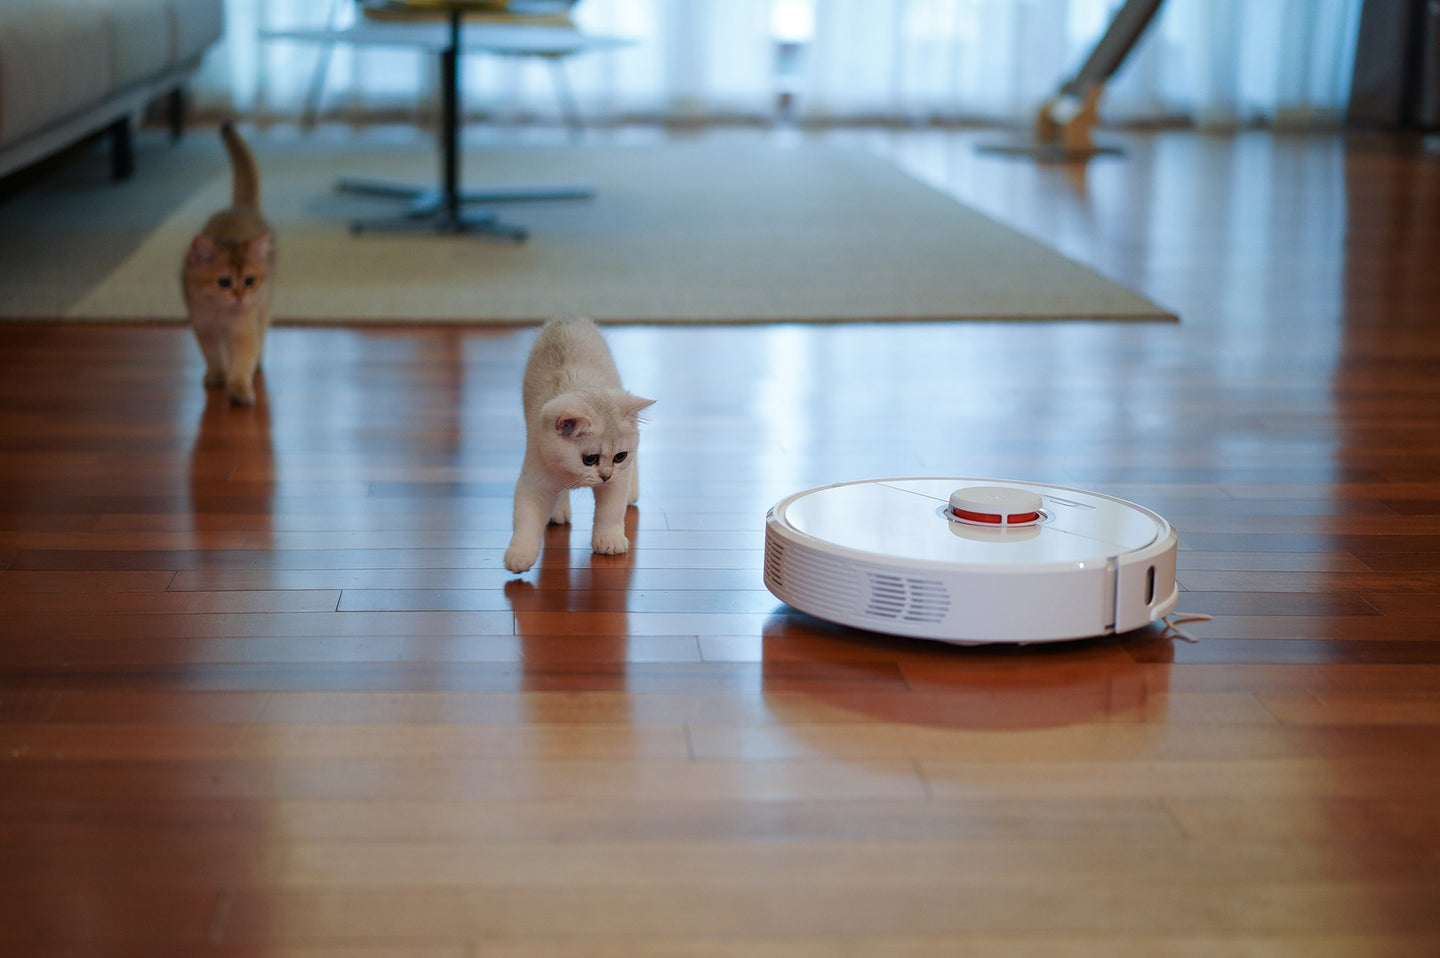 The best robot vacuum on a wood floor with two beige cats